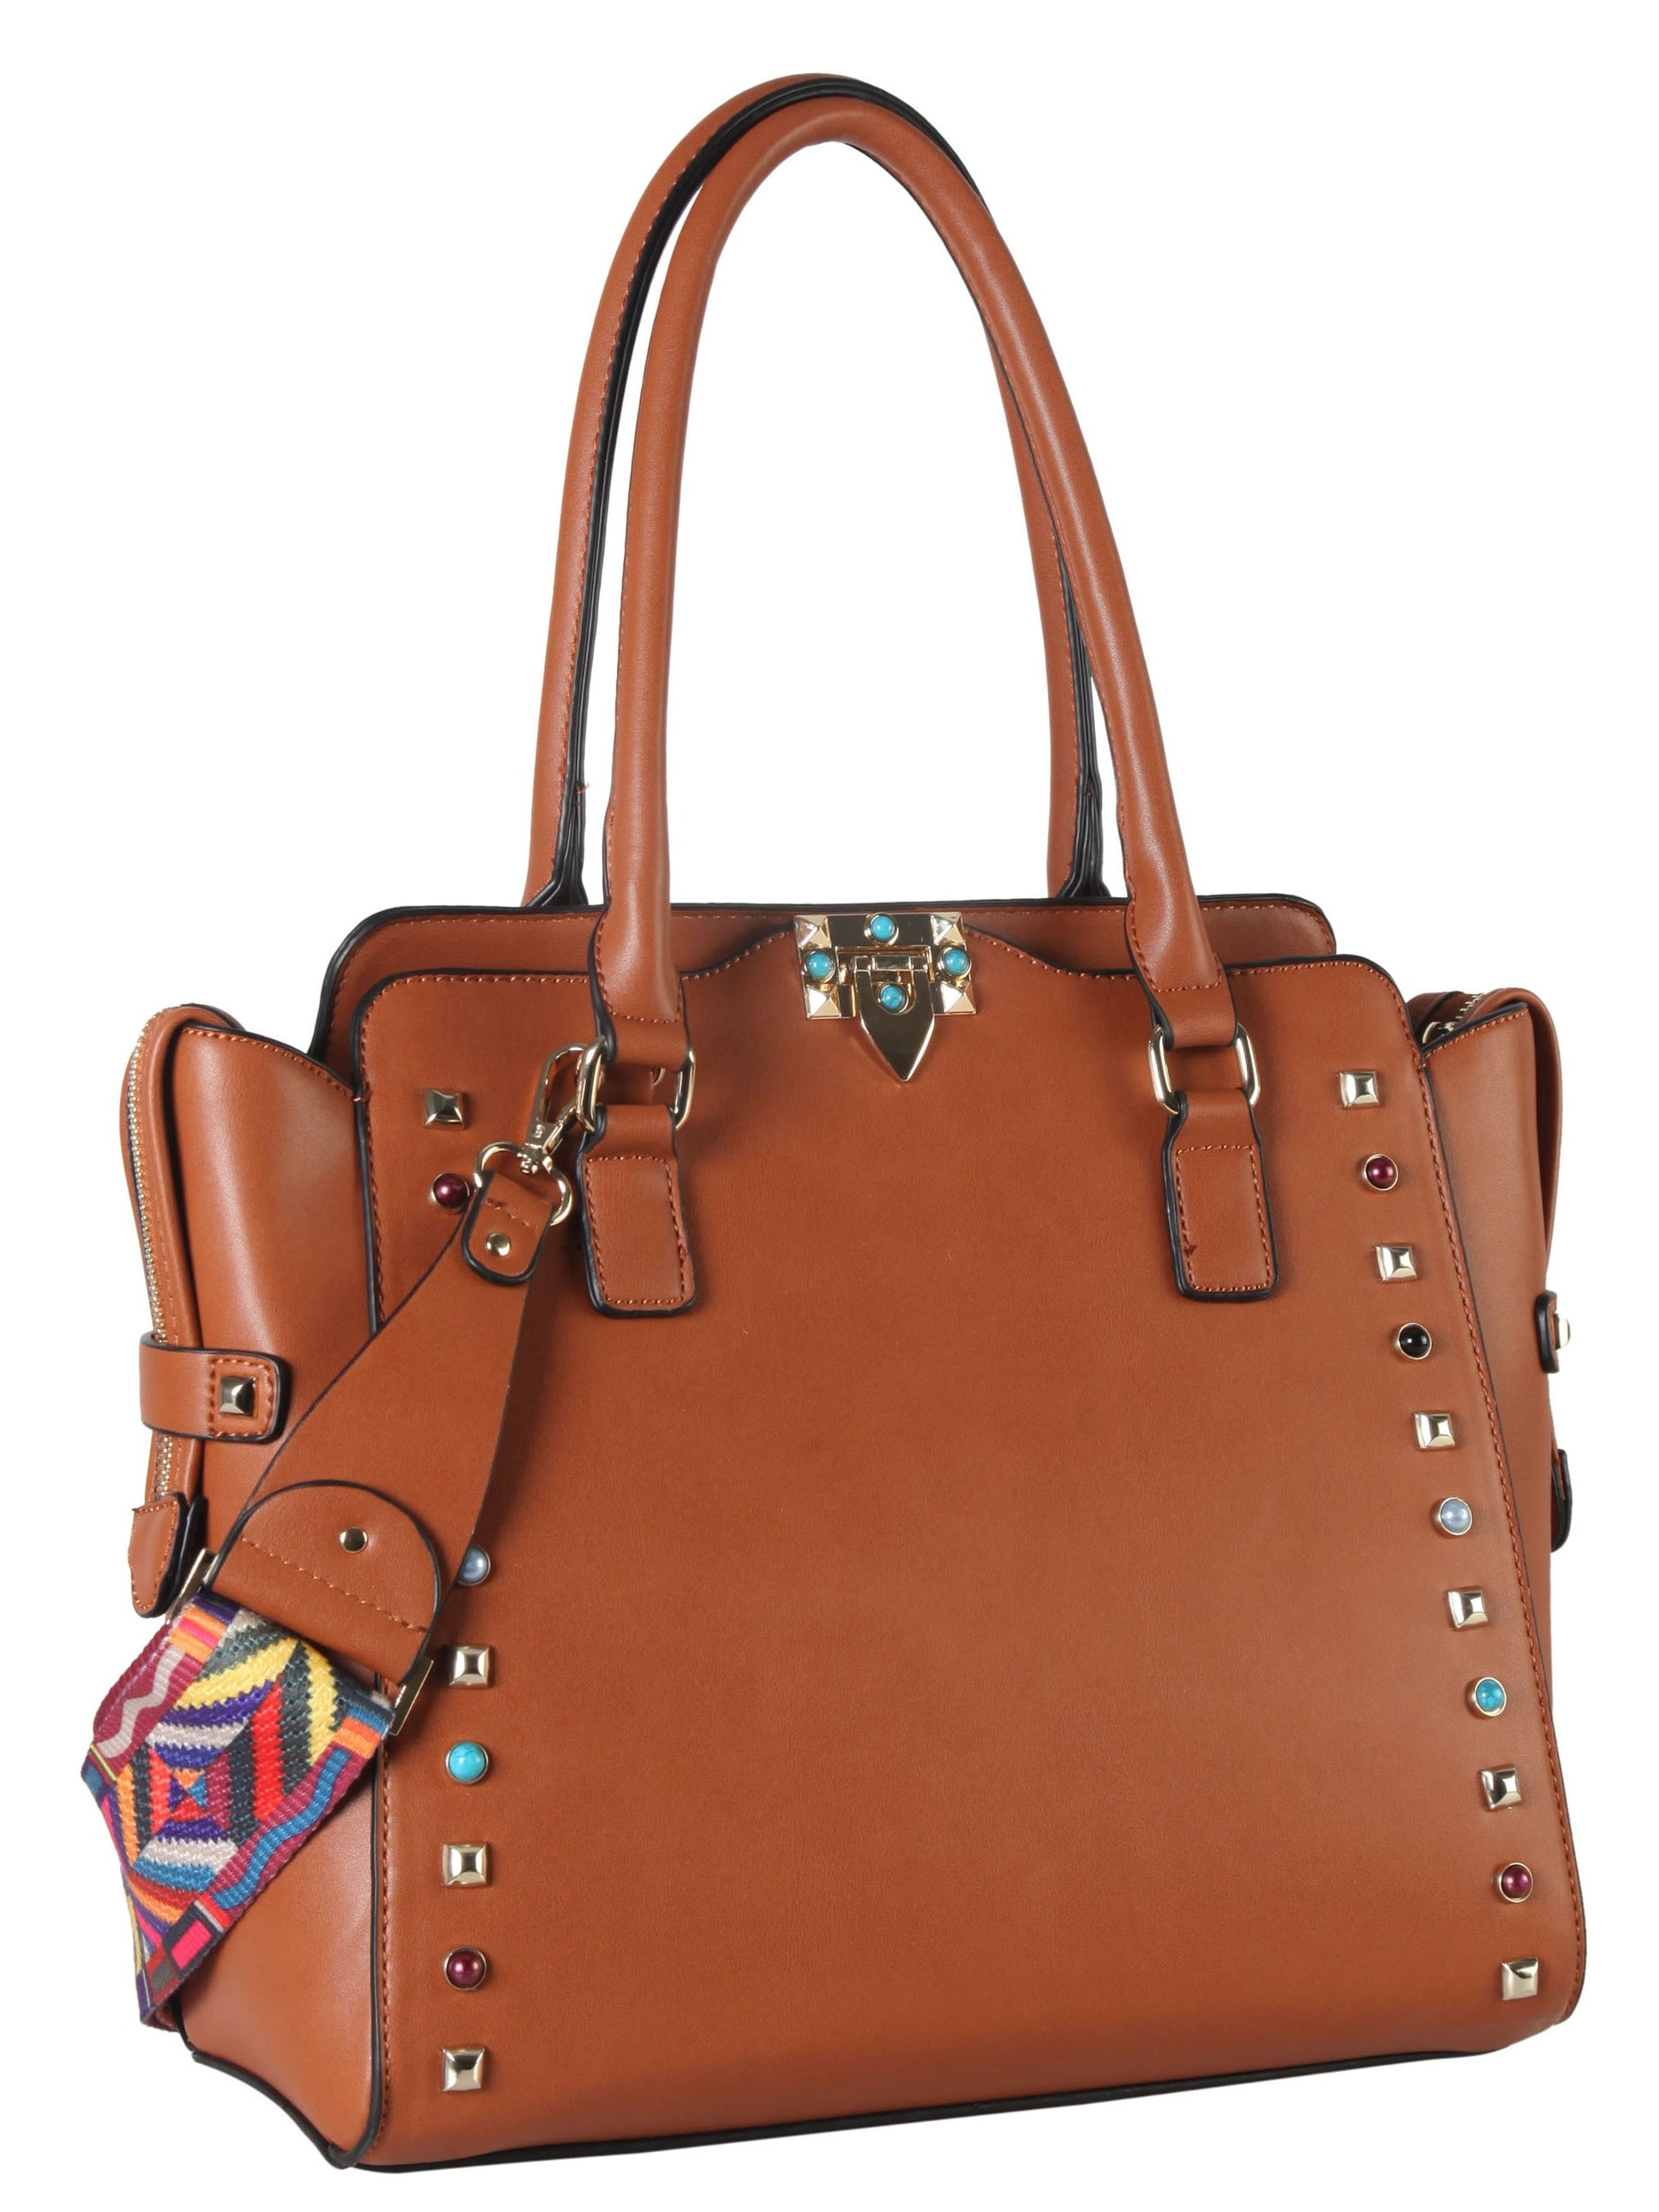 ceede3b73b25 Diophy Front Studded Bead Faux Leather Turn Lock Tote Bag with ...